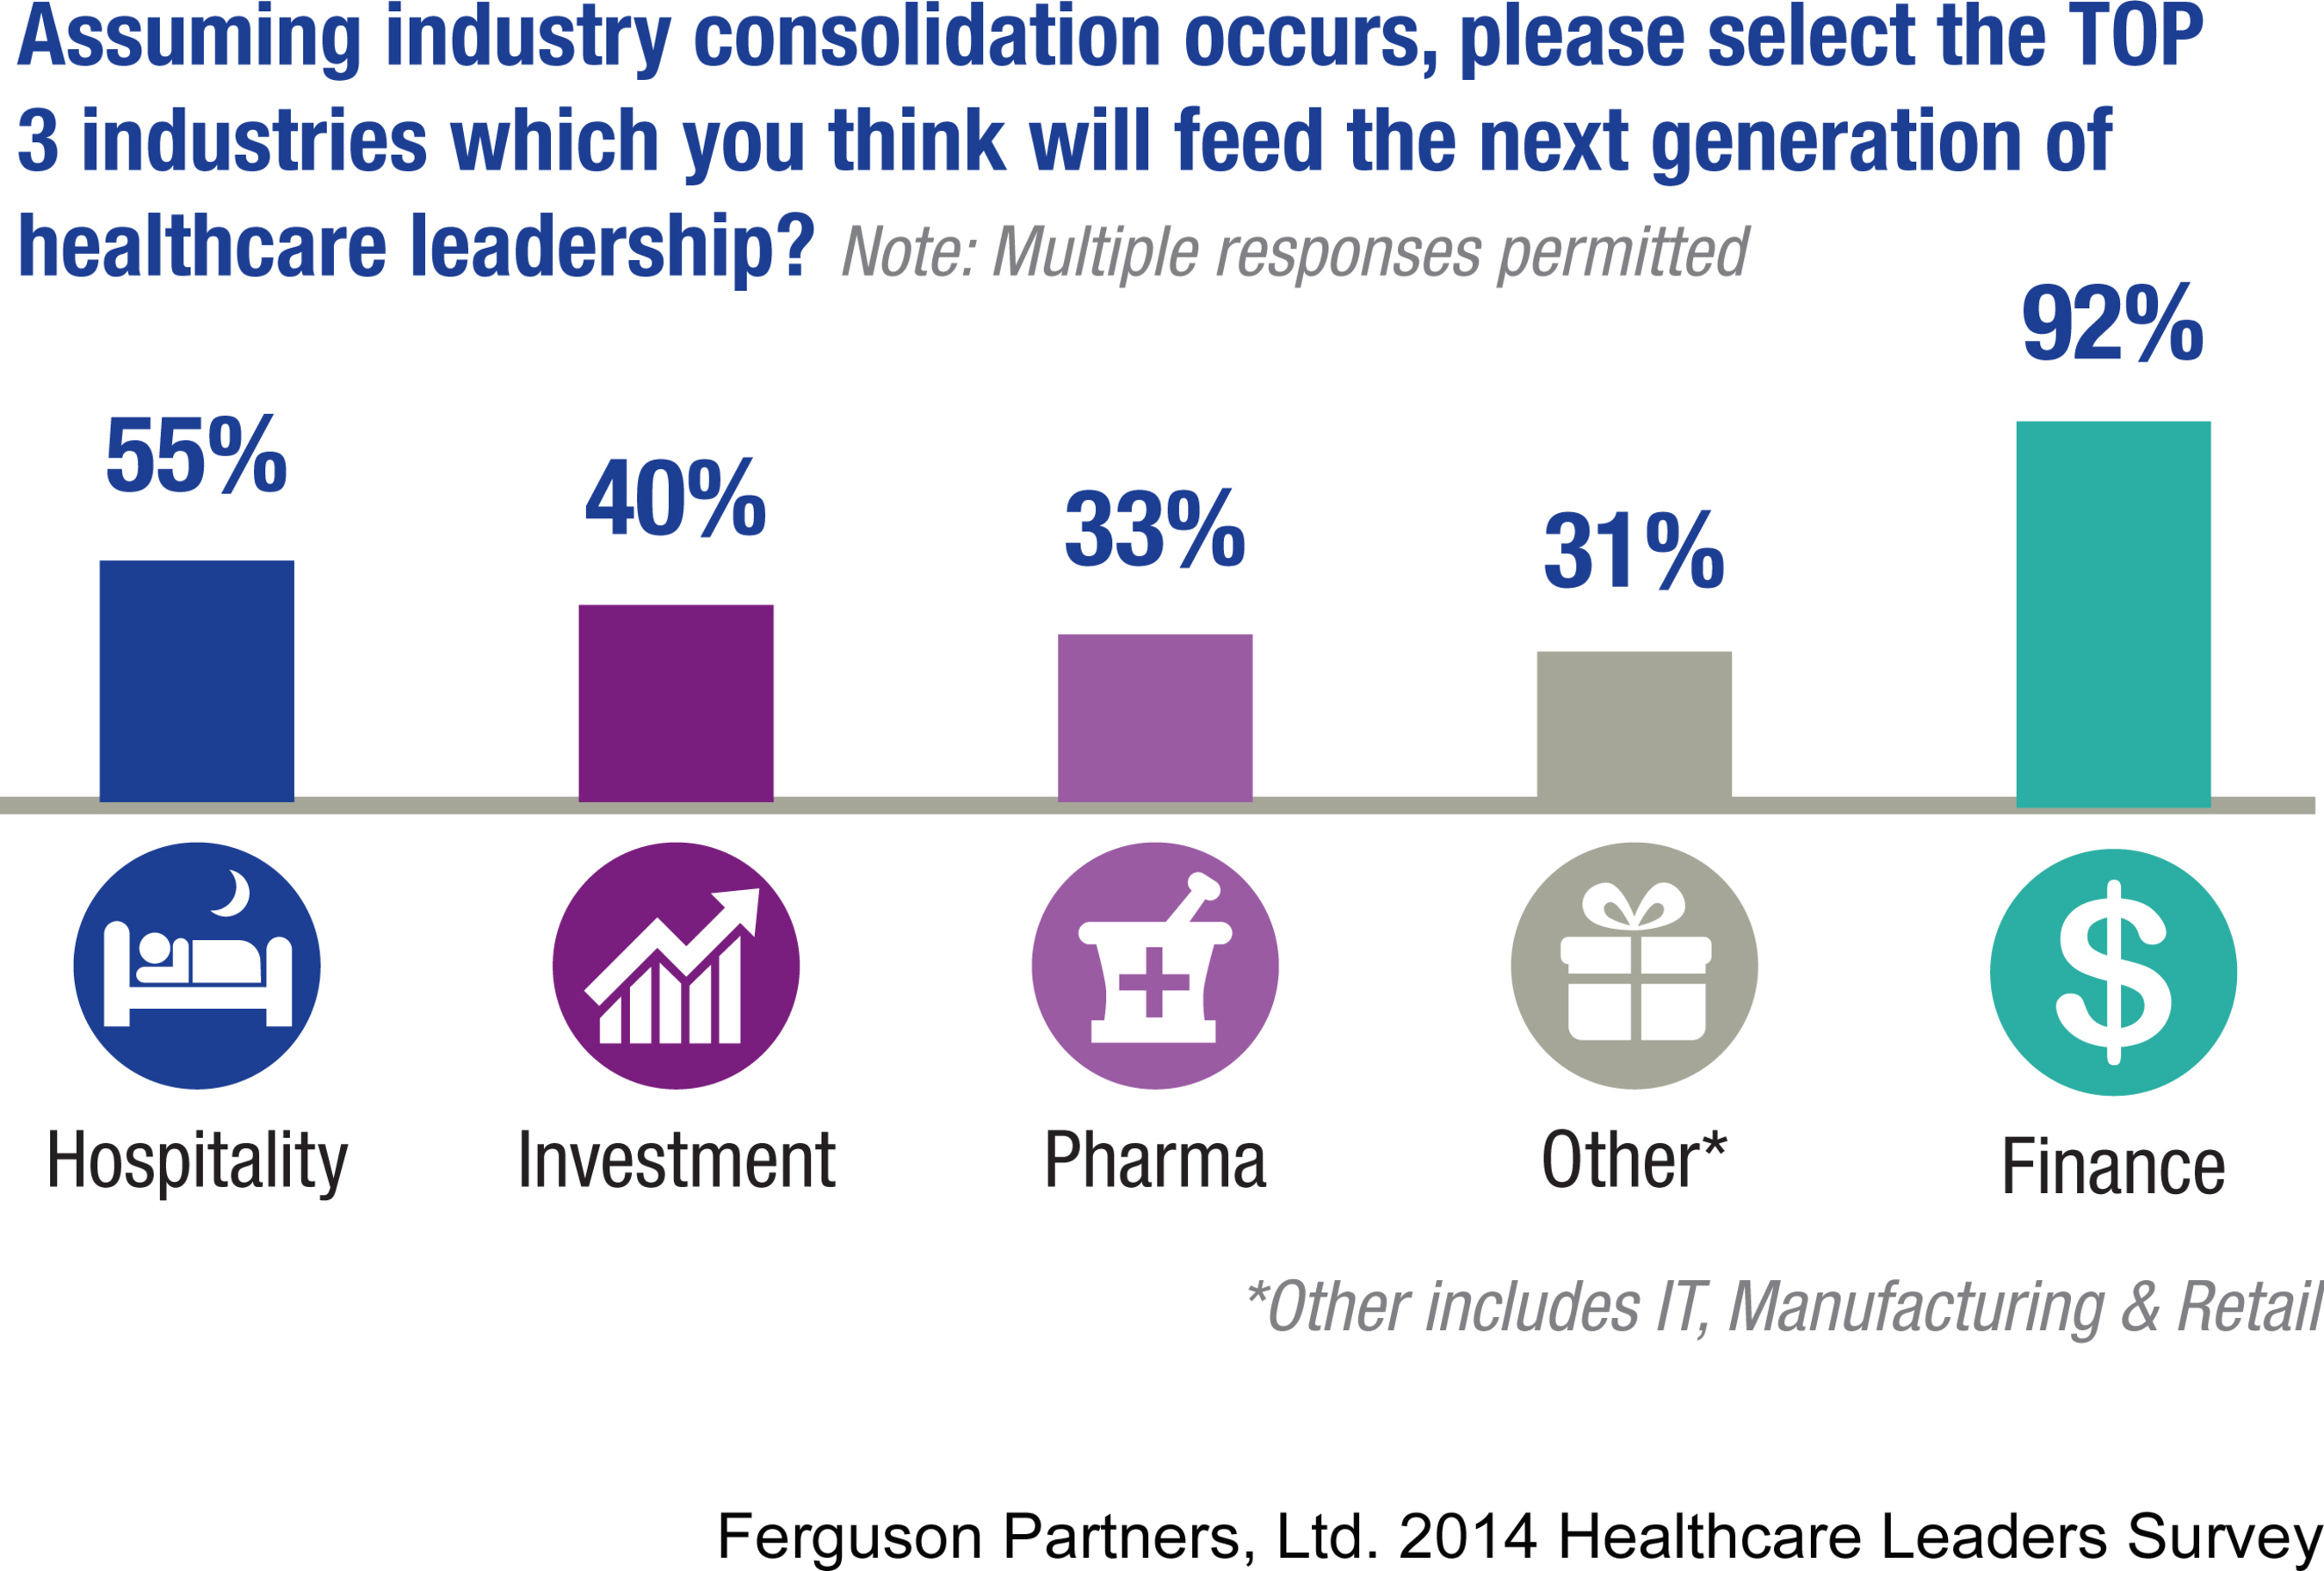 Outsiders may rule in new era of healthcare leadership according to 2014 Ferguson Partners, Ltd. Healthcare ...